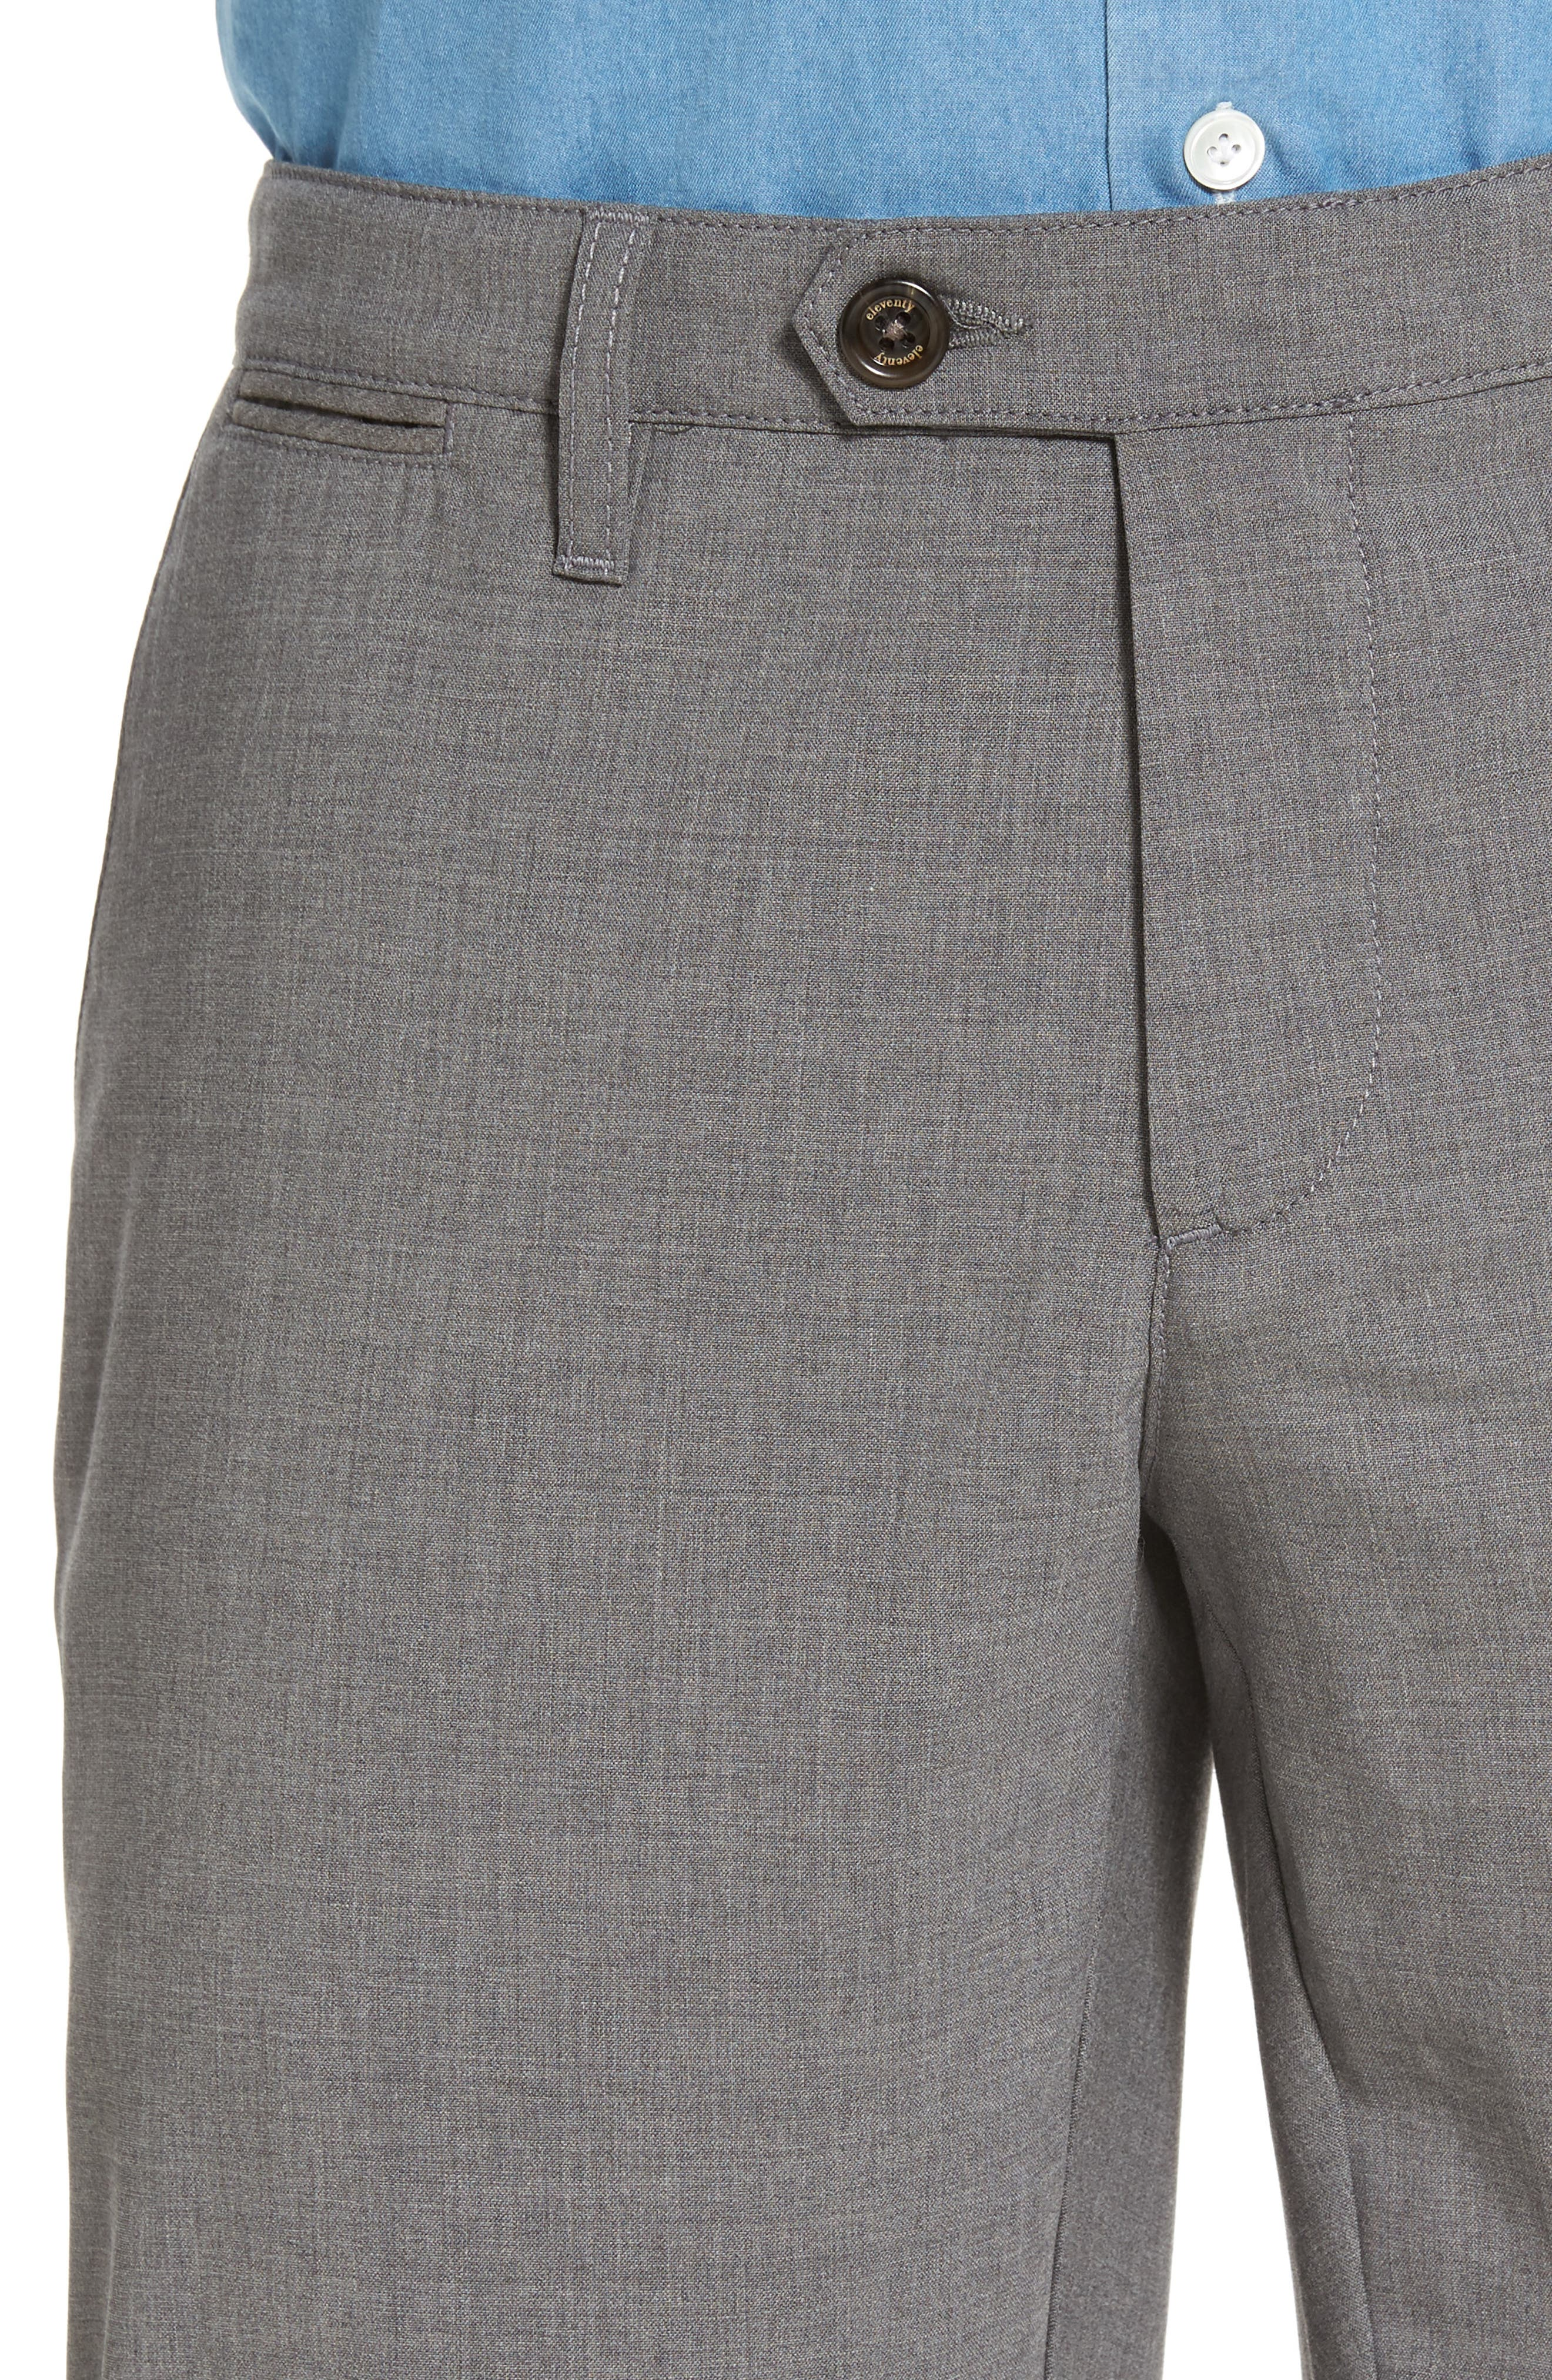 Flat Front Wool Trousers,                             Alternate thumbnail 4, color,                             Medium Grey